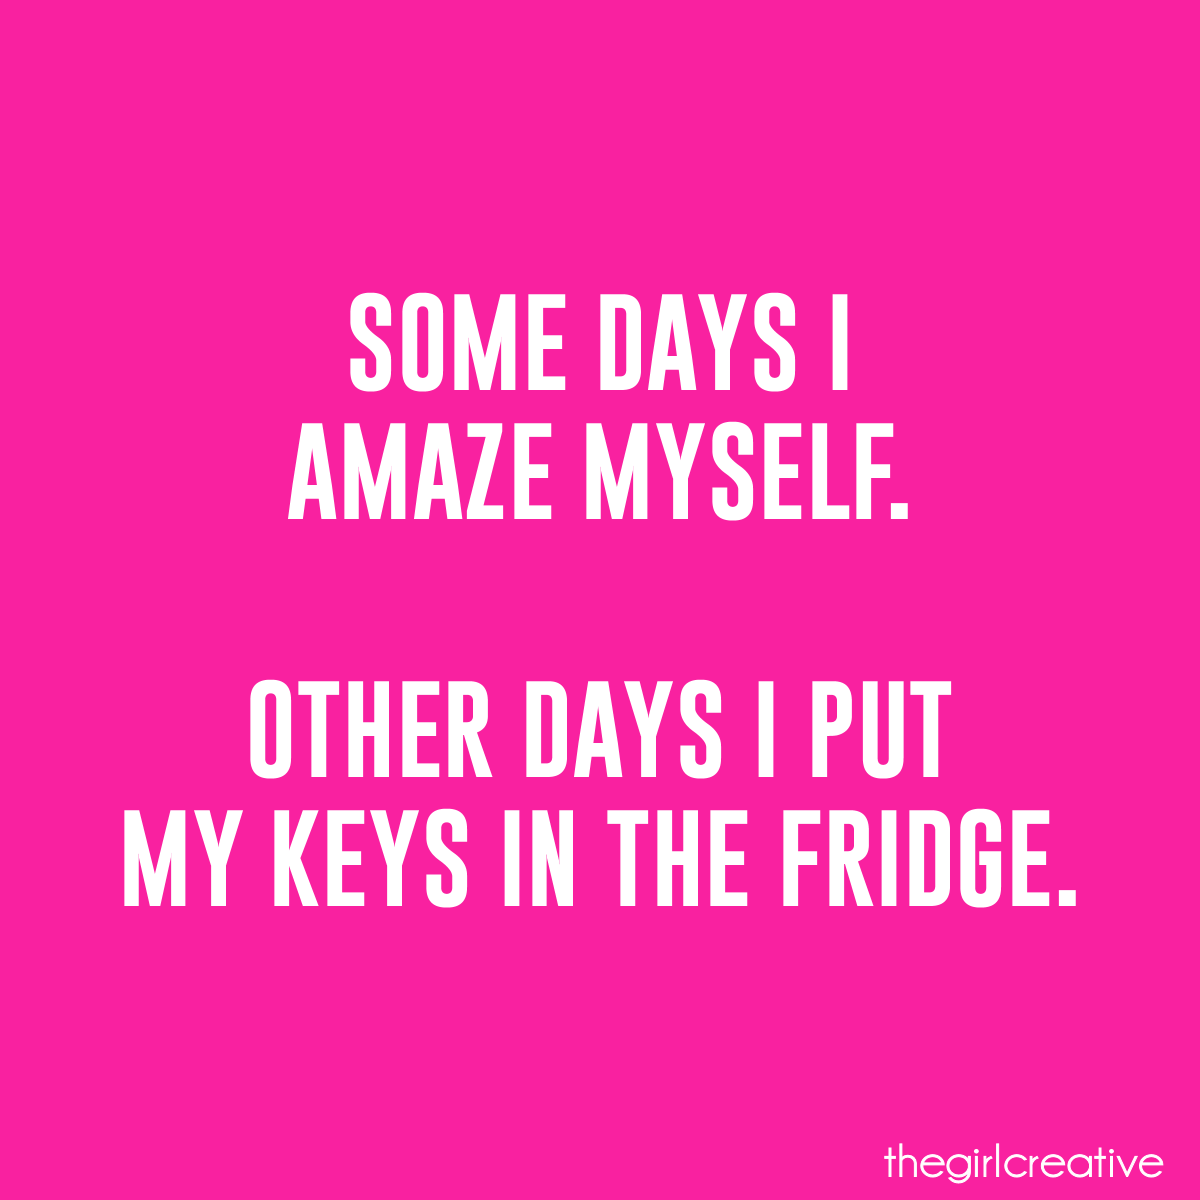 Funny Quotes And Sayings Quotes About Motherhood Humor Funny Mom Quotes Quotes About Motherhood Fun Quotes Funny